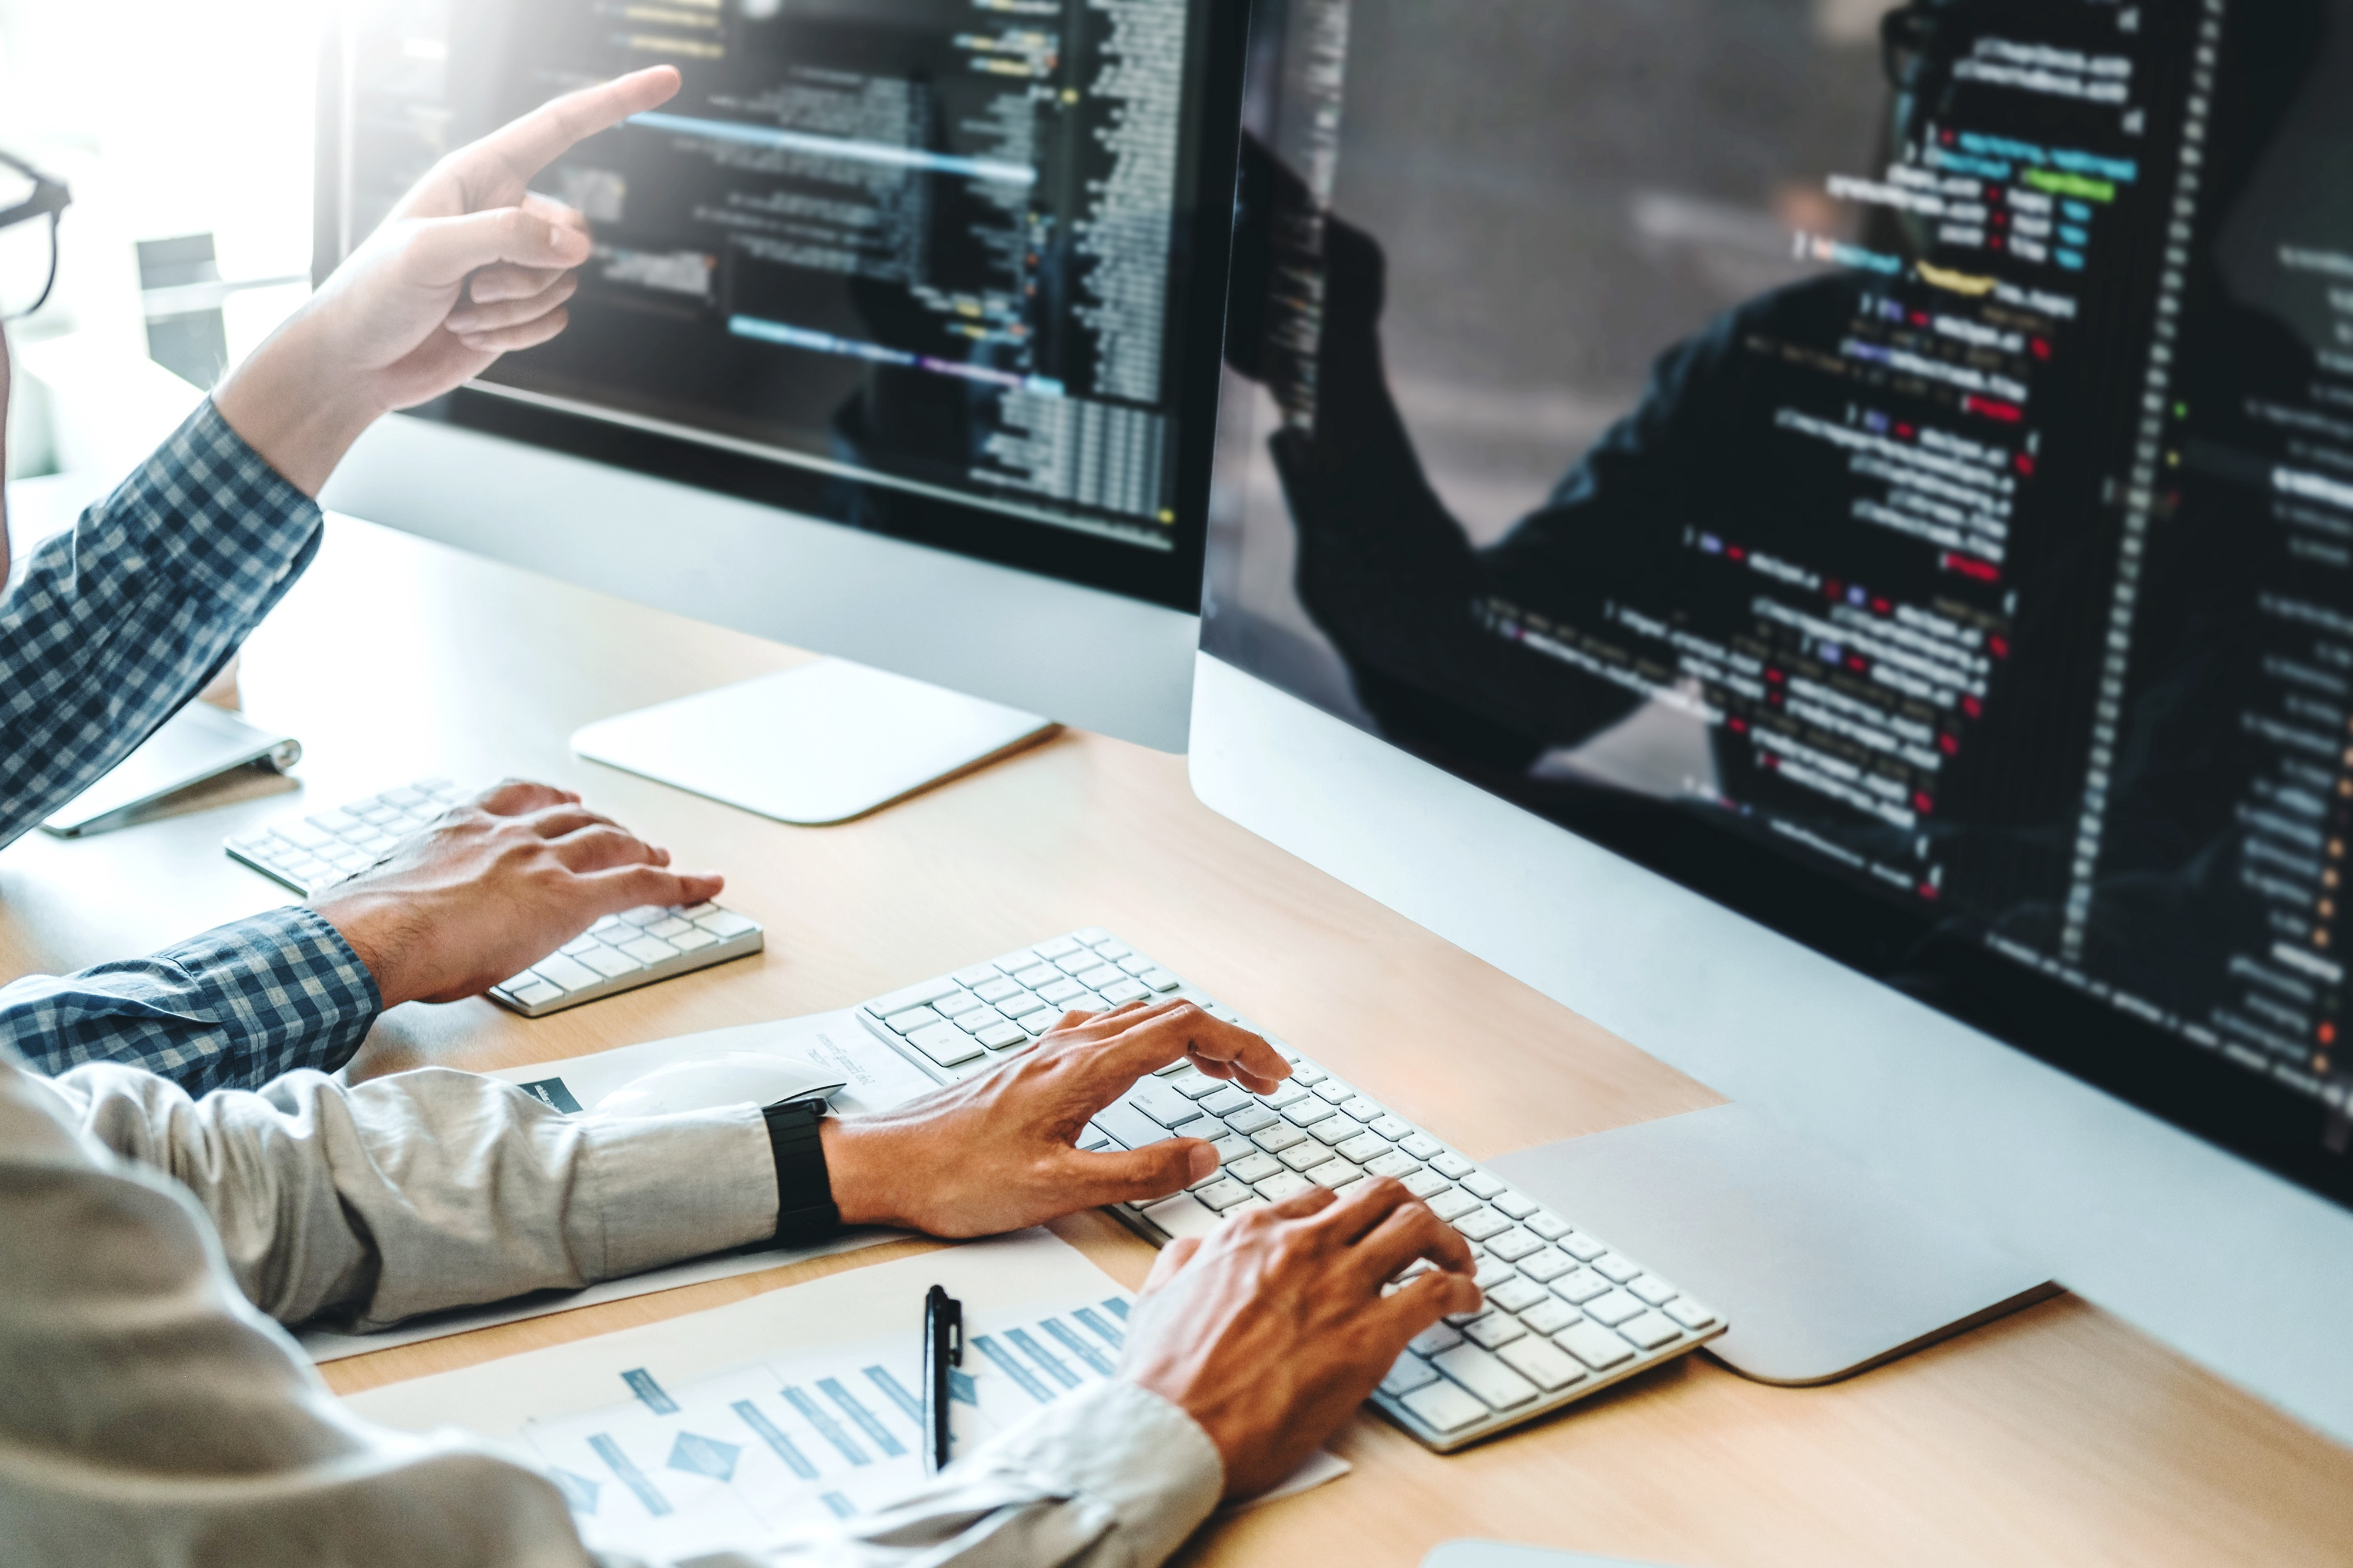 New Fda Guidelines On Validation Of Software Systems What Do They Mean For Quality Assurance By Kcr Cro Kcr Spotlight Series Medium